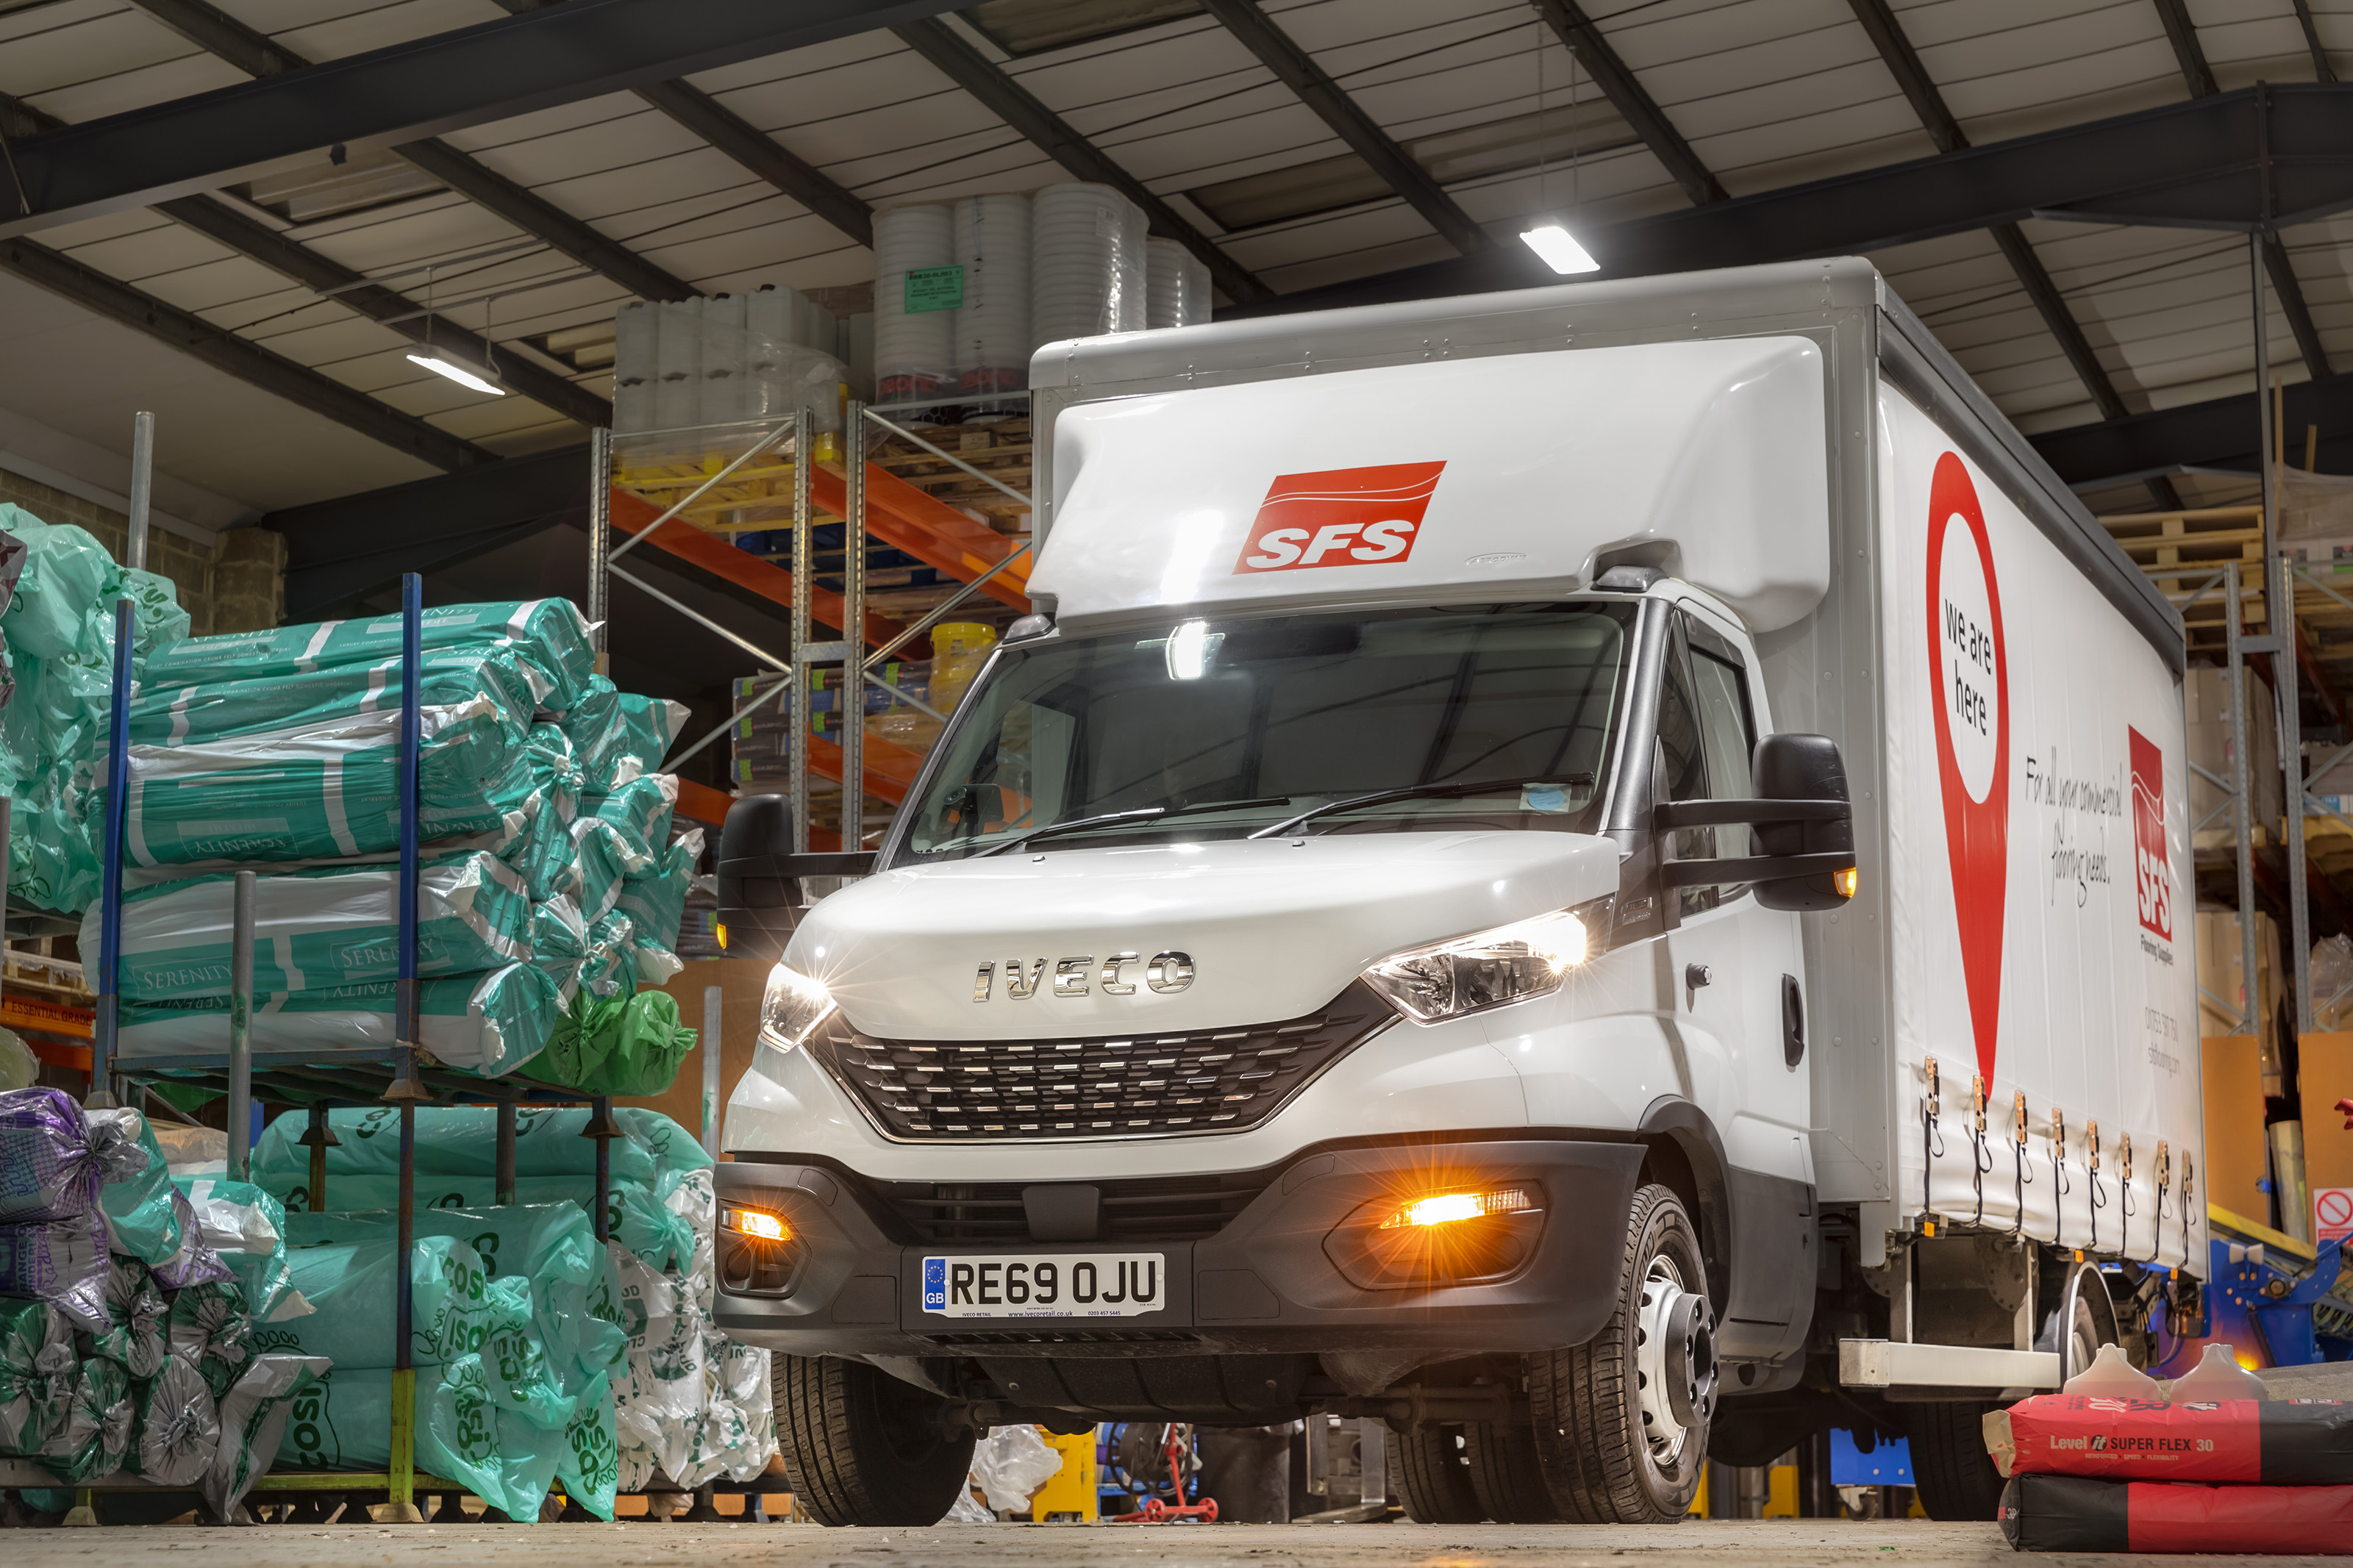 IVECO's New Daily Hi-Matic is a perfect fit for SFS Flooring Supplies